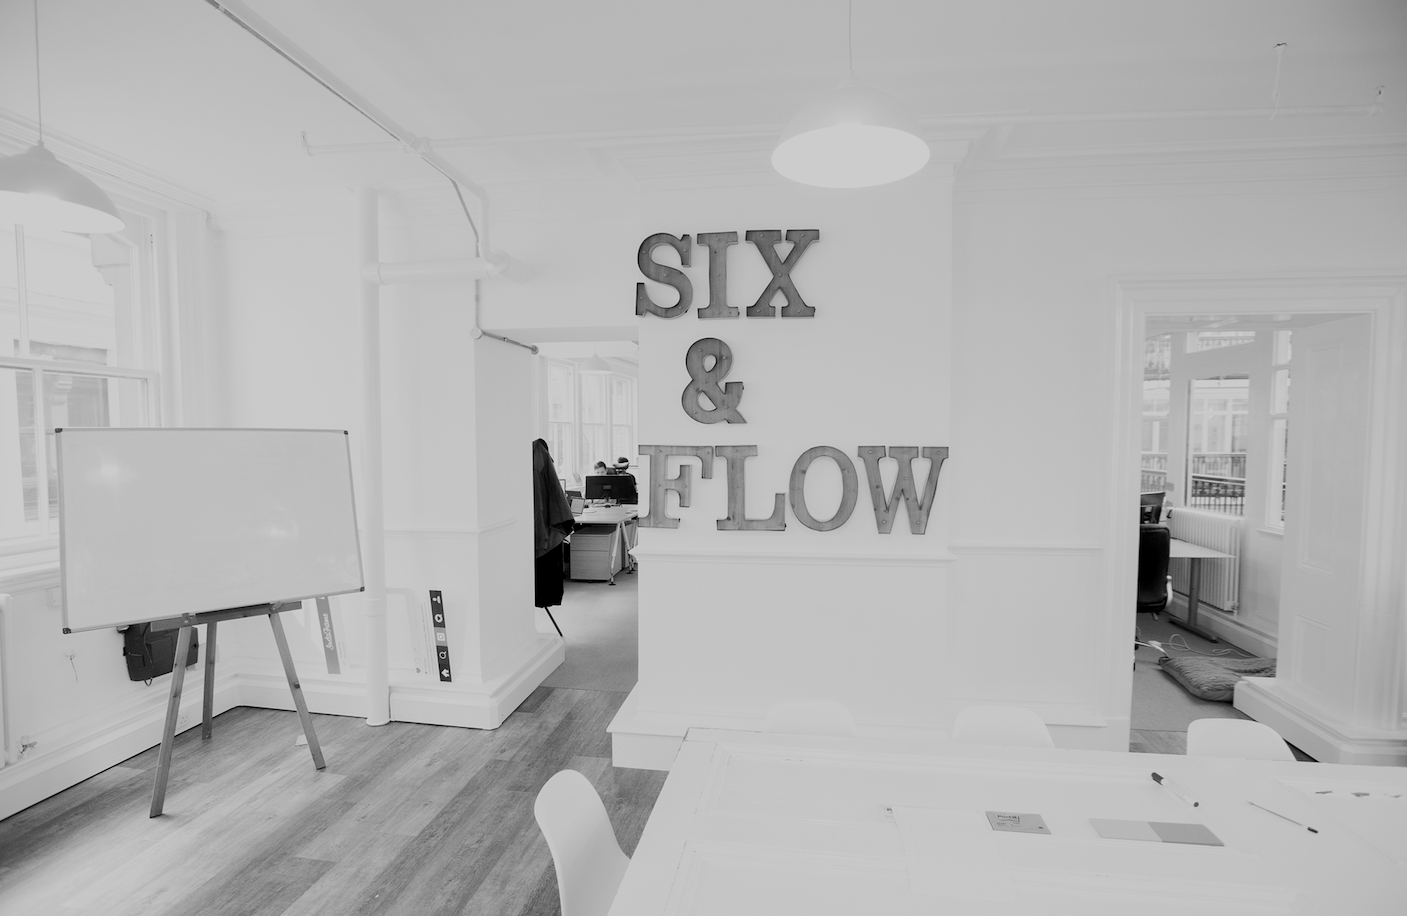 An introduction to Six & Flow, the growth and inbound marketing agency